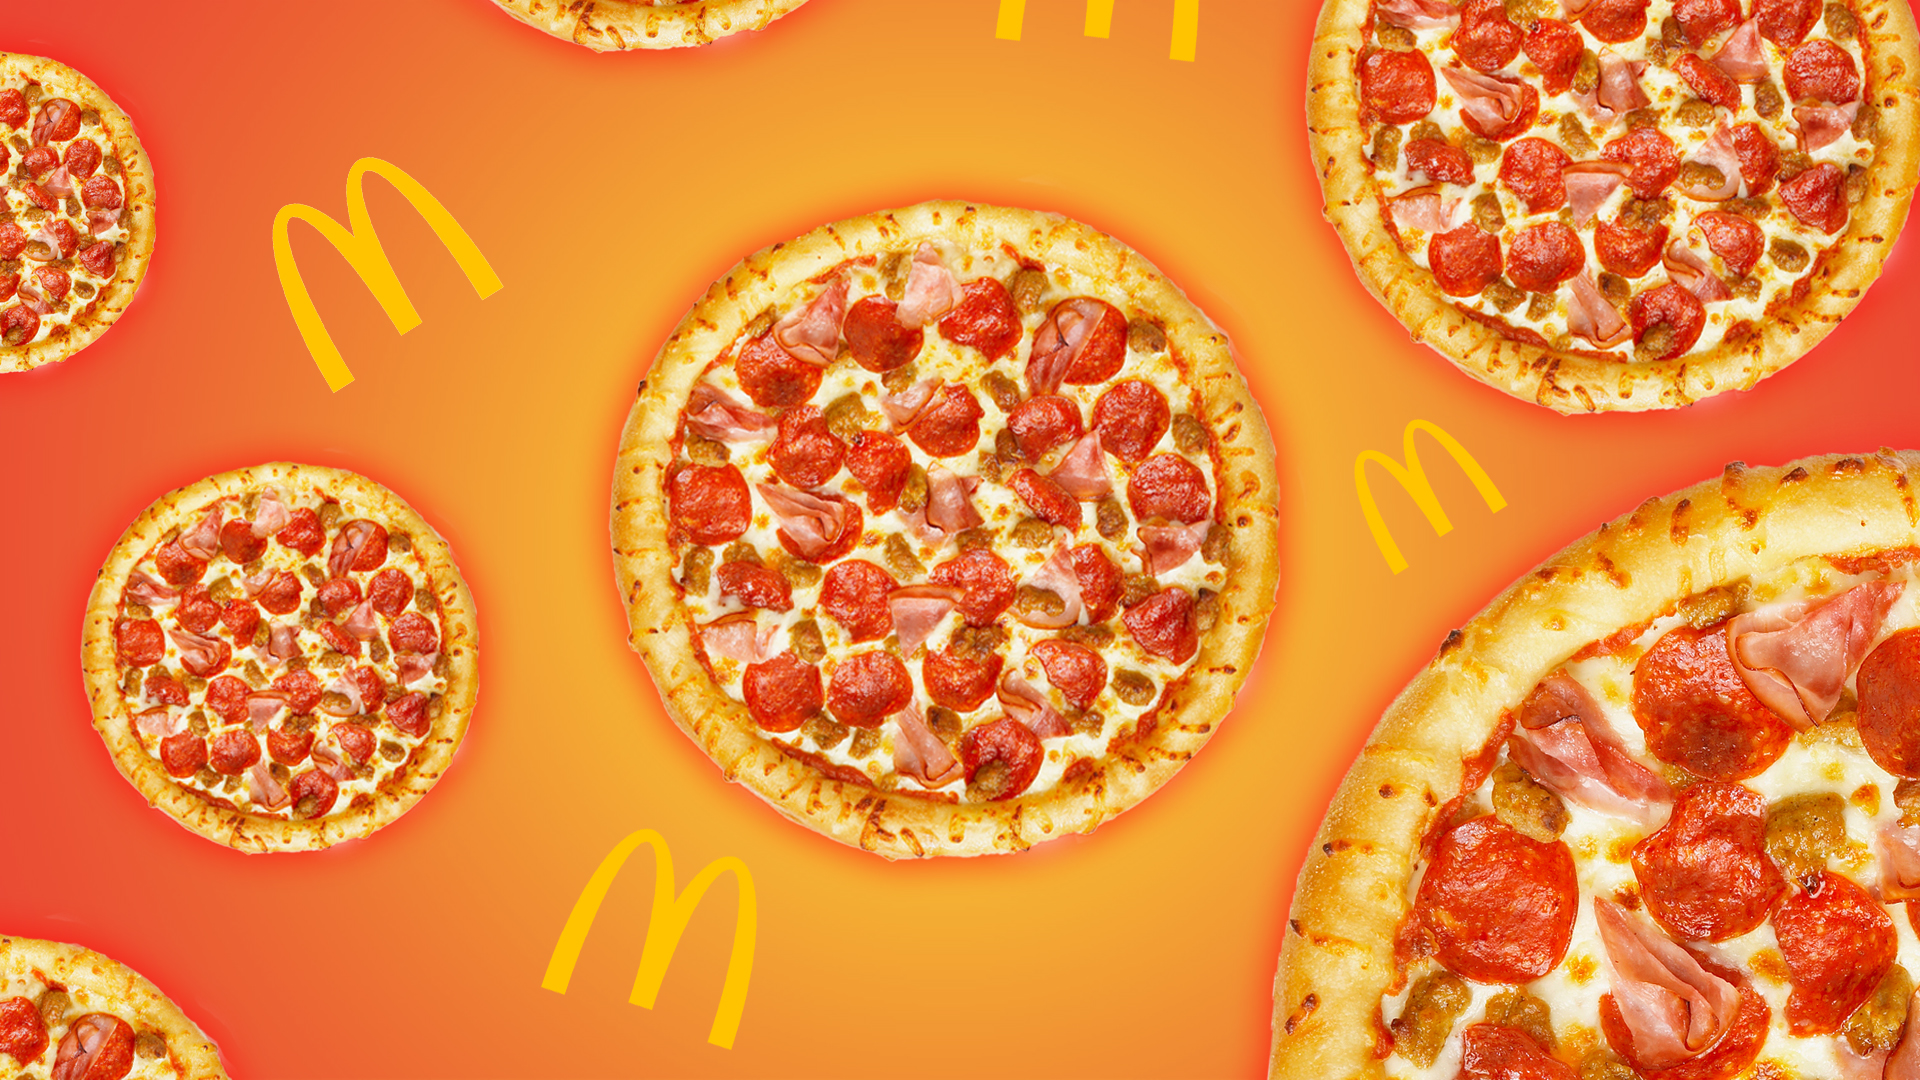 Mcdonalds Mcpizza Only Available In One Location